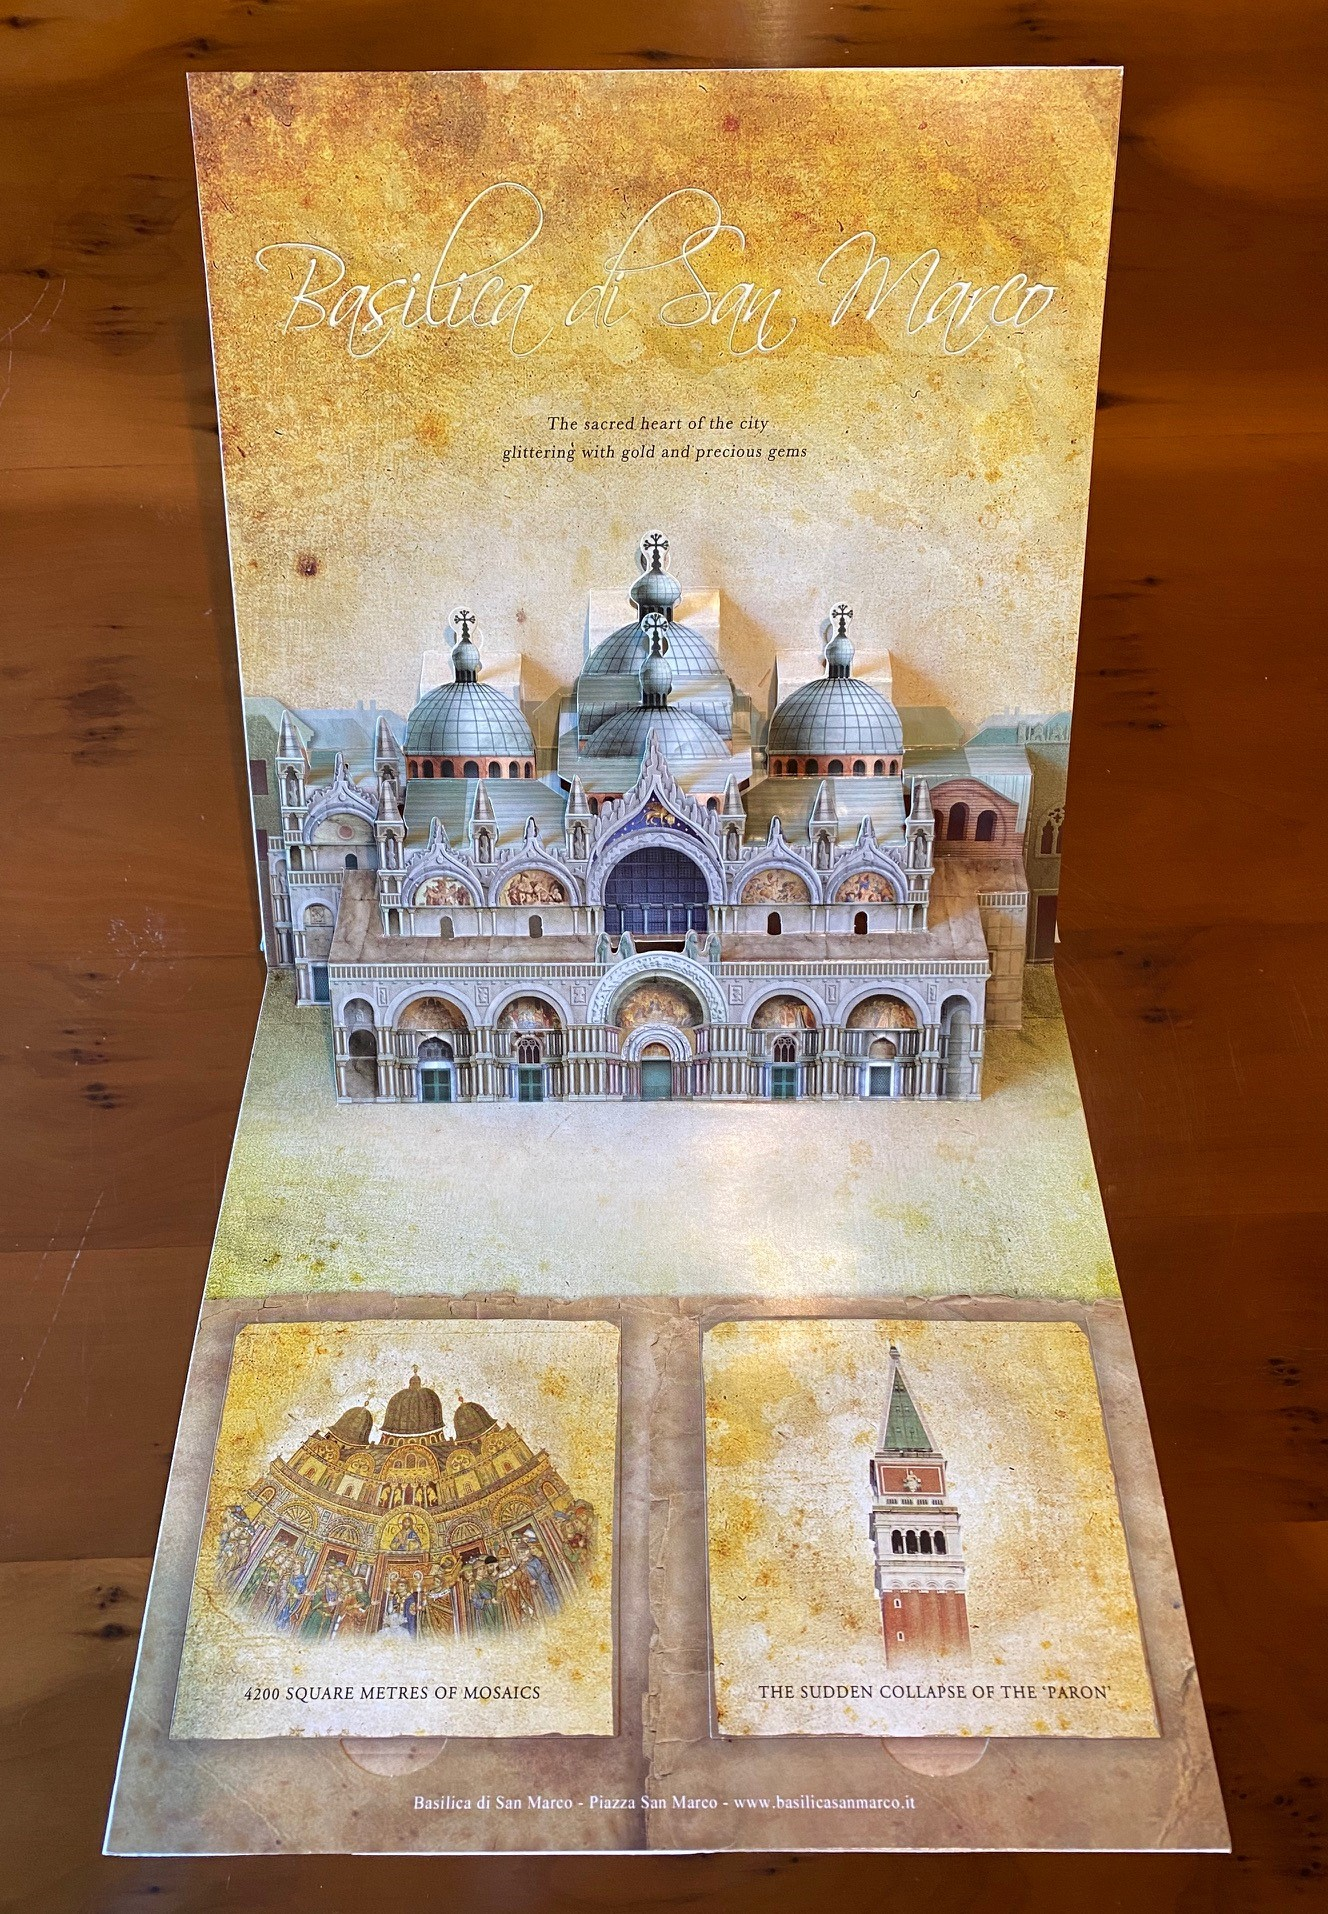 PAPER ENGINEERING AND ART WORK BY DARIO CESTARO AND PAOLA ZOFFOLI - The Treasures of Venice Pop-Up Book